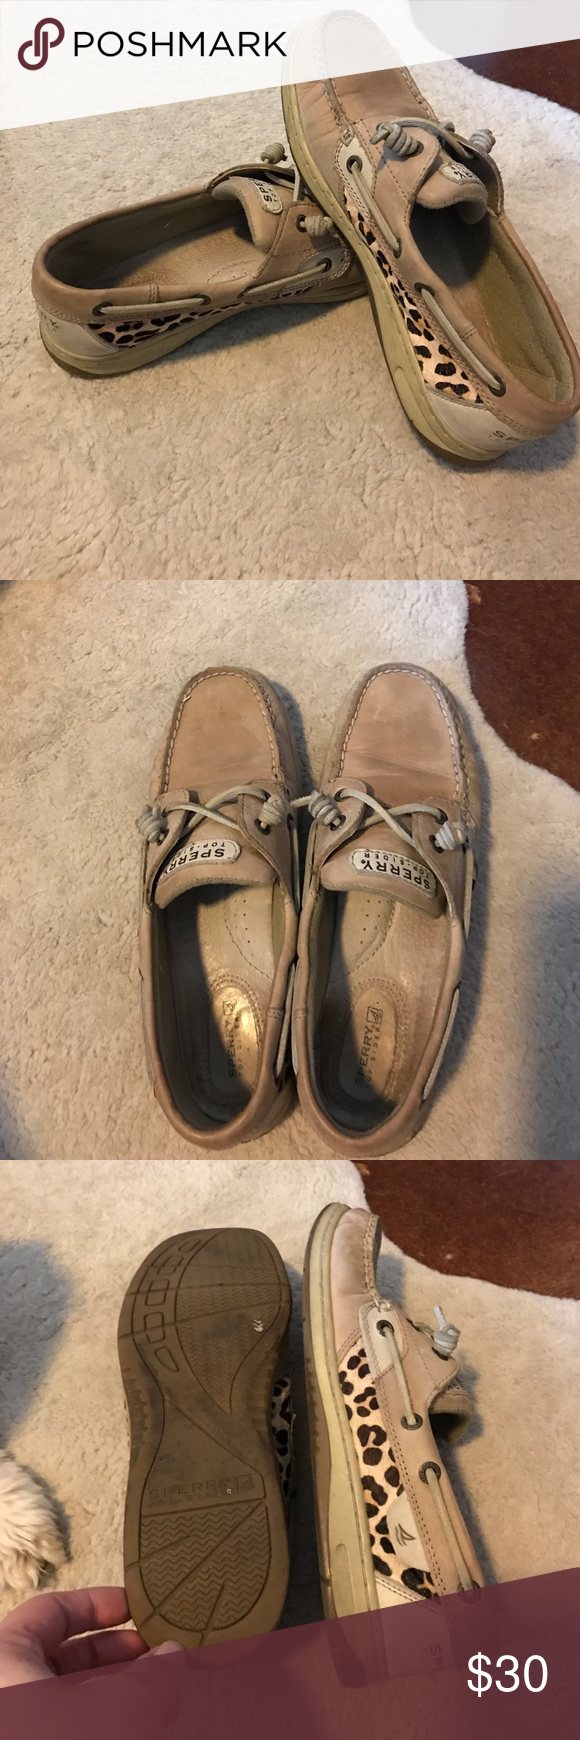 Tan & leopard Sperry topsiders Tan leather Sperry deck shoes with leopard print horse hair accents. Size 8.5m. Good used condition; pre-broken in. Some obvious wear, but tons of life left. Sperry Top-Sider Shoes Flats & Loafers